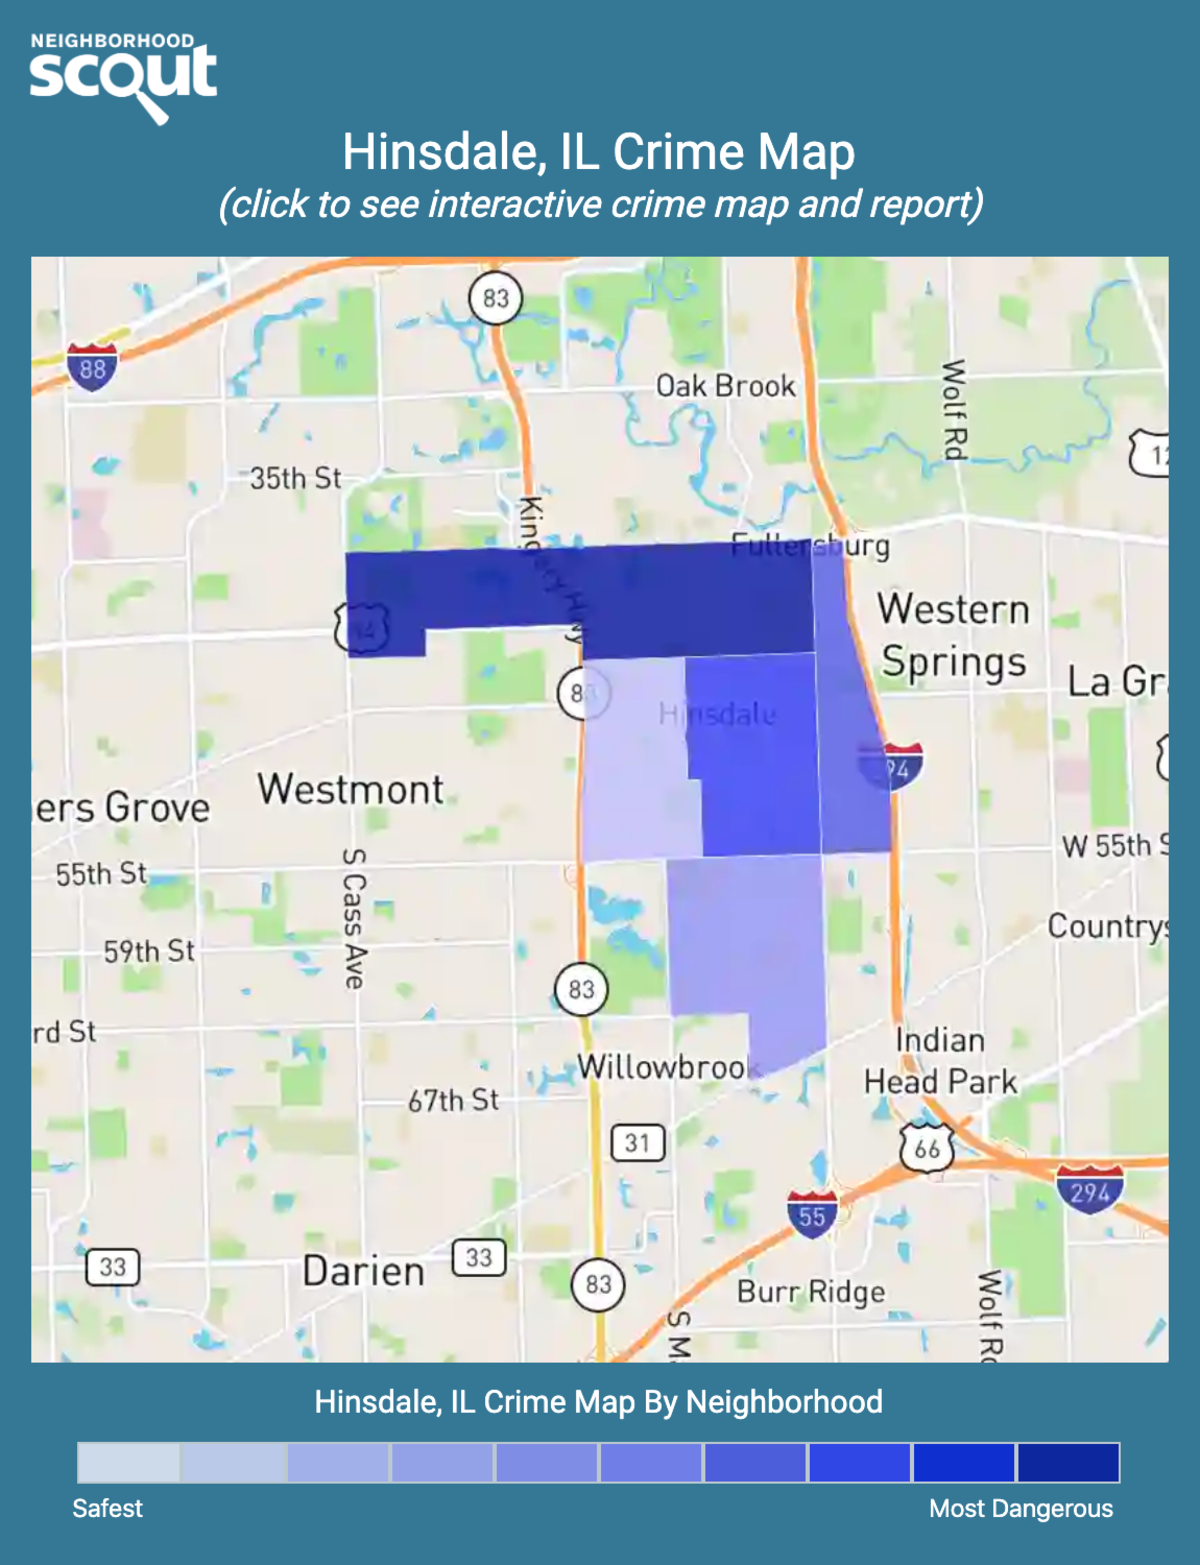 Hinsdale, Illinois crime map